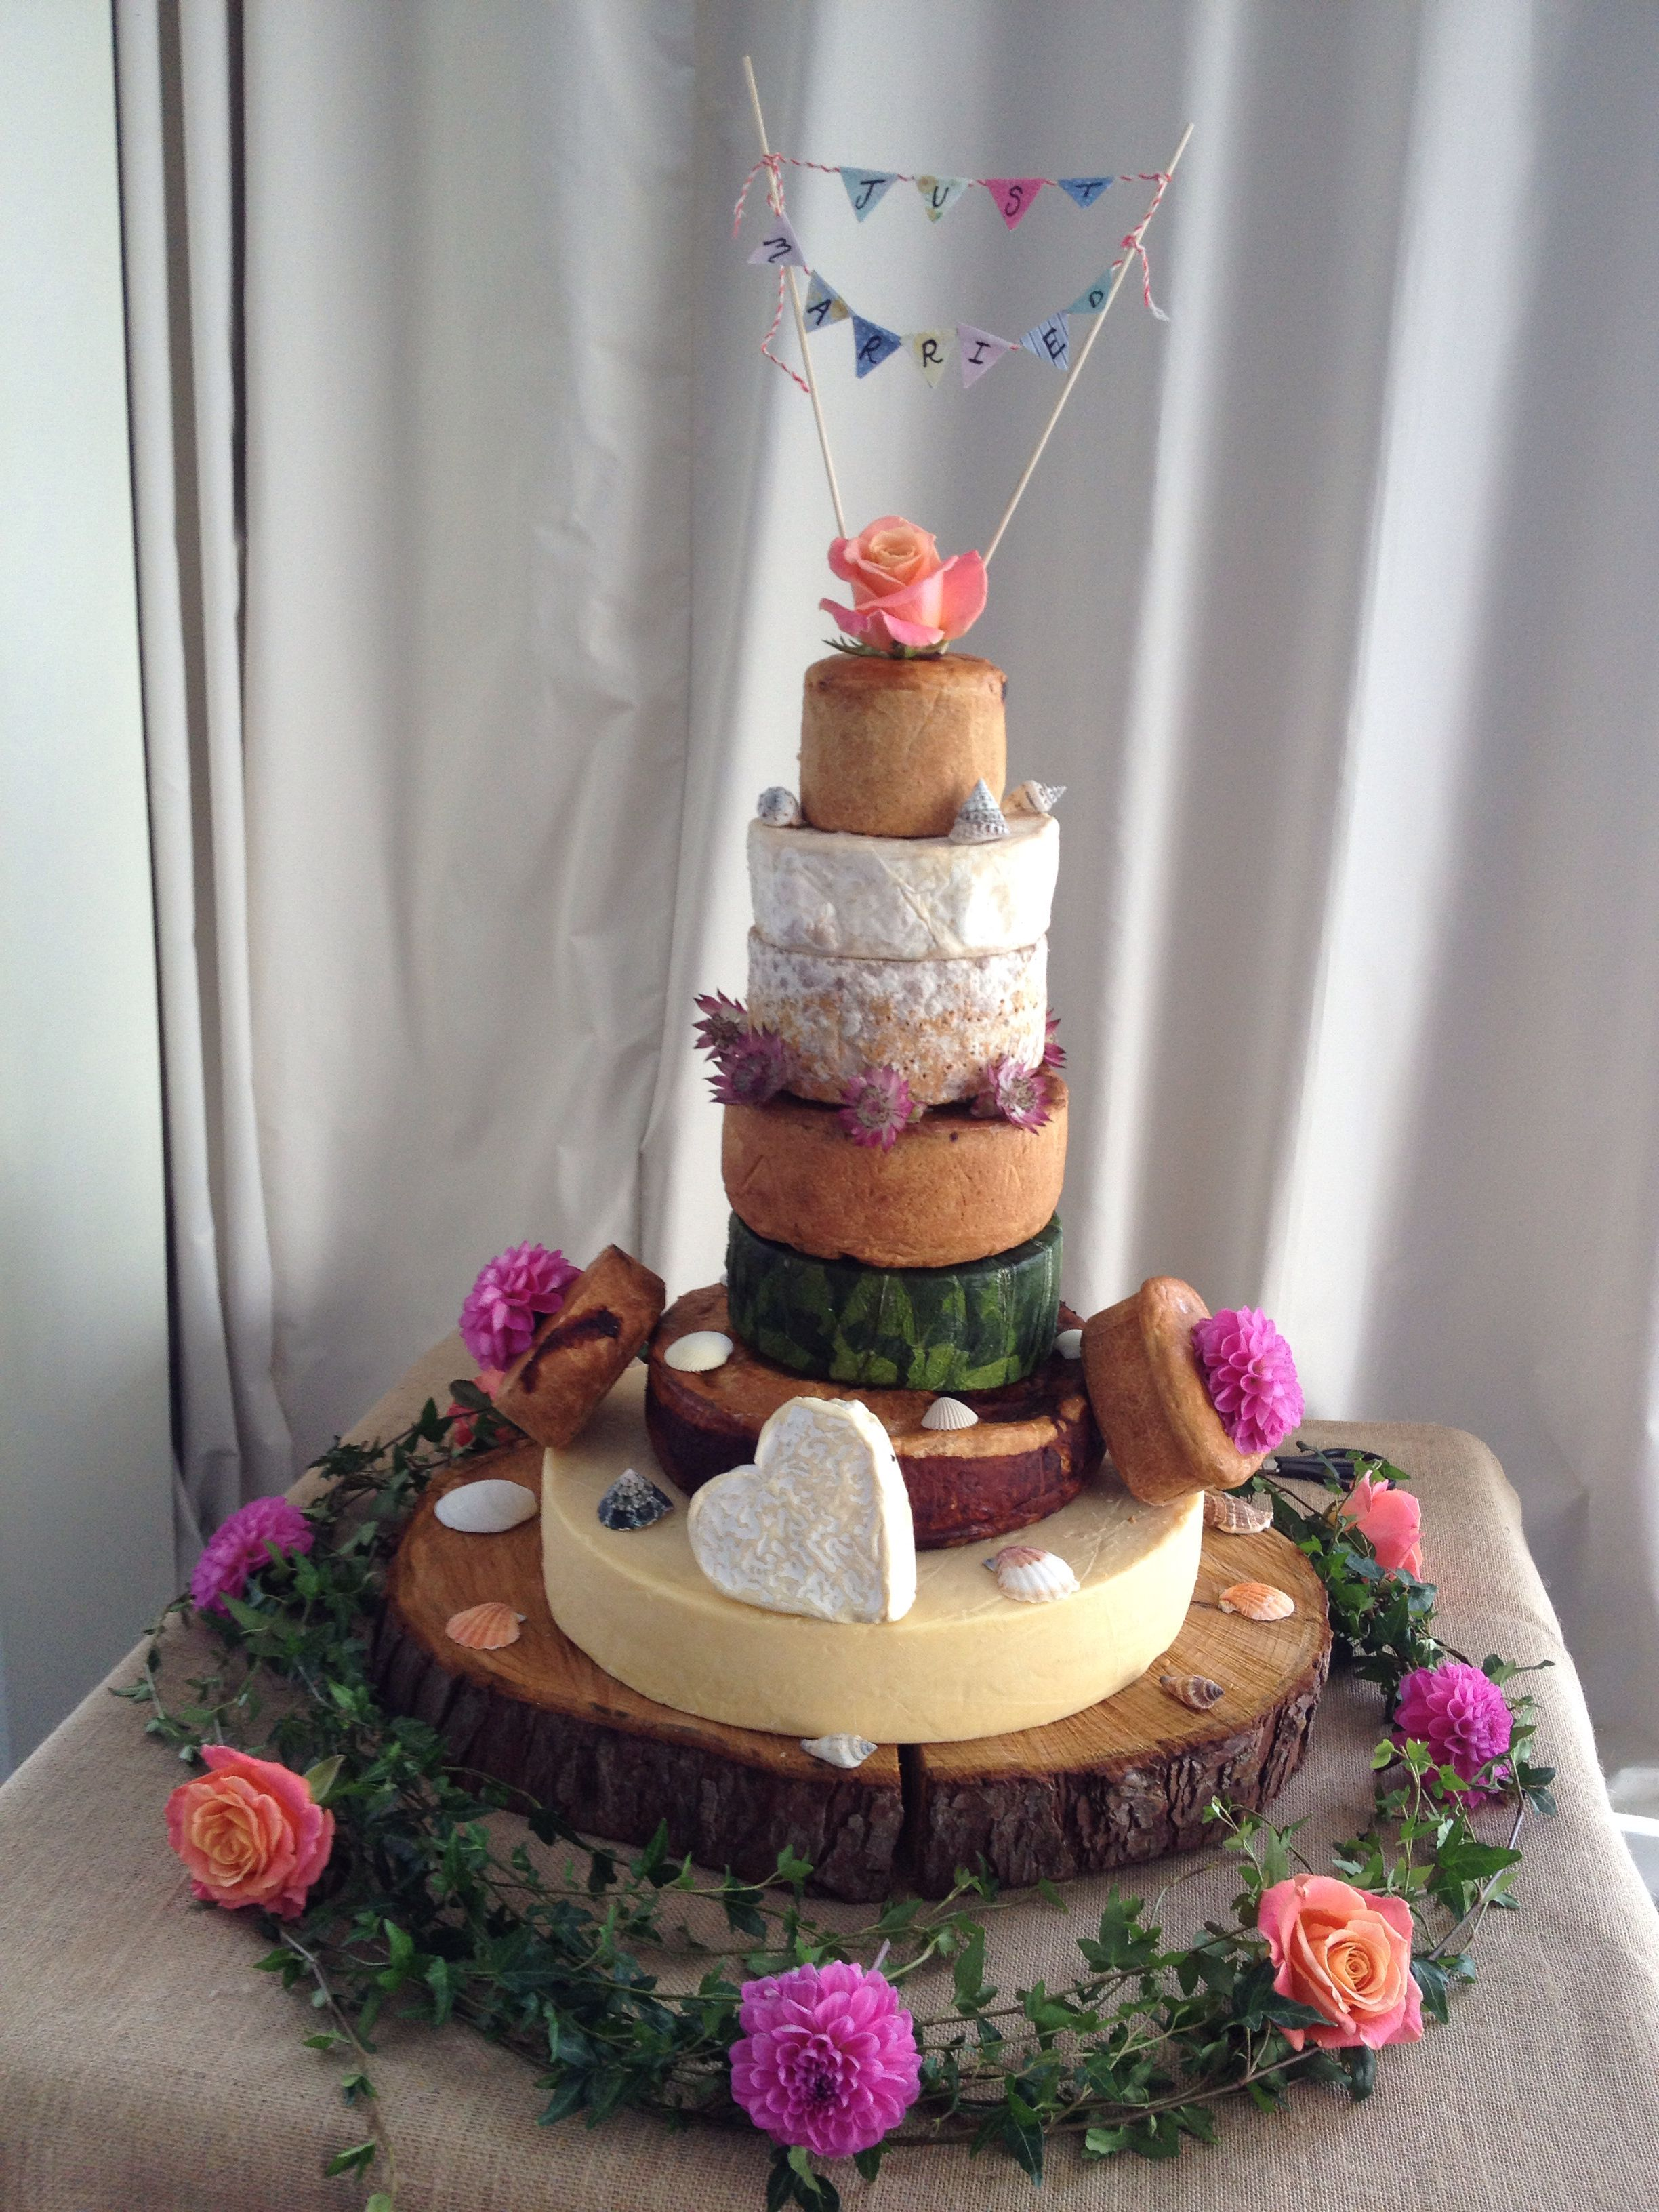 Pork Pie And Cheese Wedding Cake For All Your Decorating Supplies Please Visit Craftcompany Co Uk